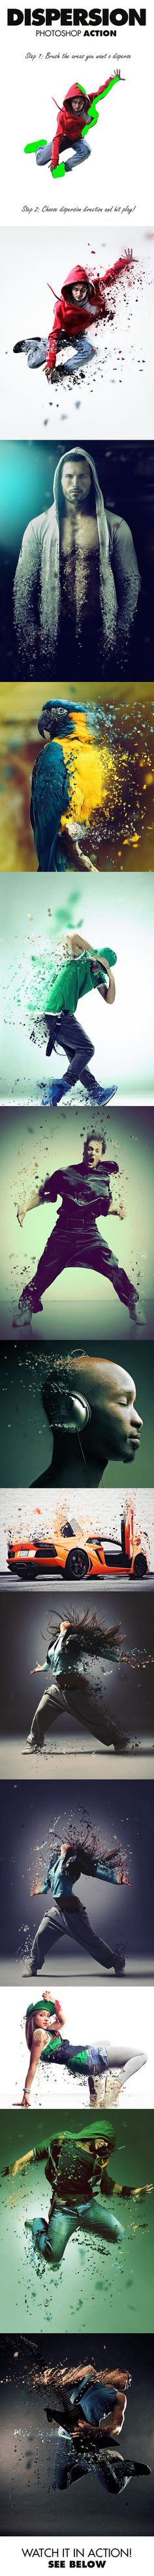 Dispersion Photoshop Action - Photo Effects Actions Photography Editing Digital Painting Tutorial Lightroom, Photoshop Effekte, Effects Photoshop, Photoshop Illustrator, Photoshop Elements, Photoshop Tutorial, Photoshop Photography, Photography Tutorials, Digital Photography